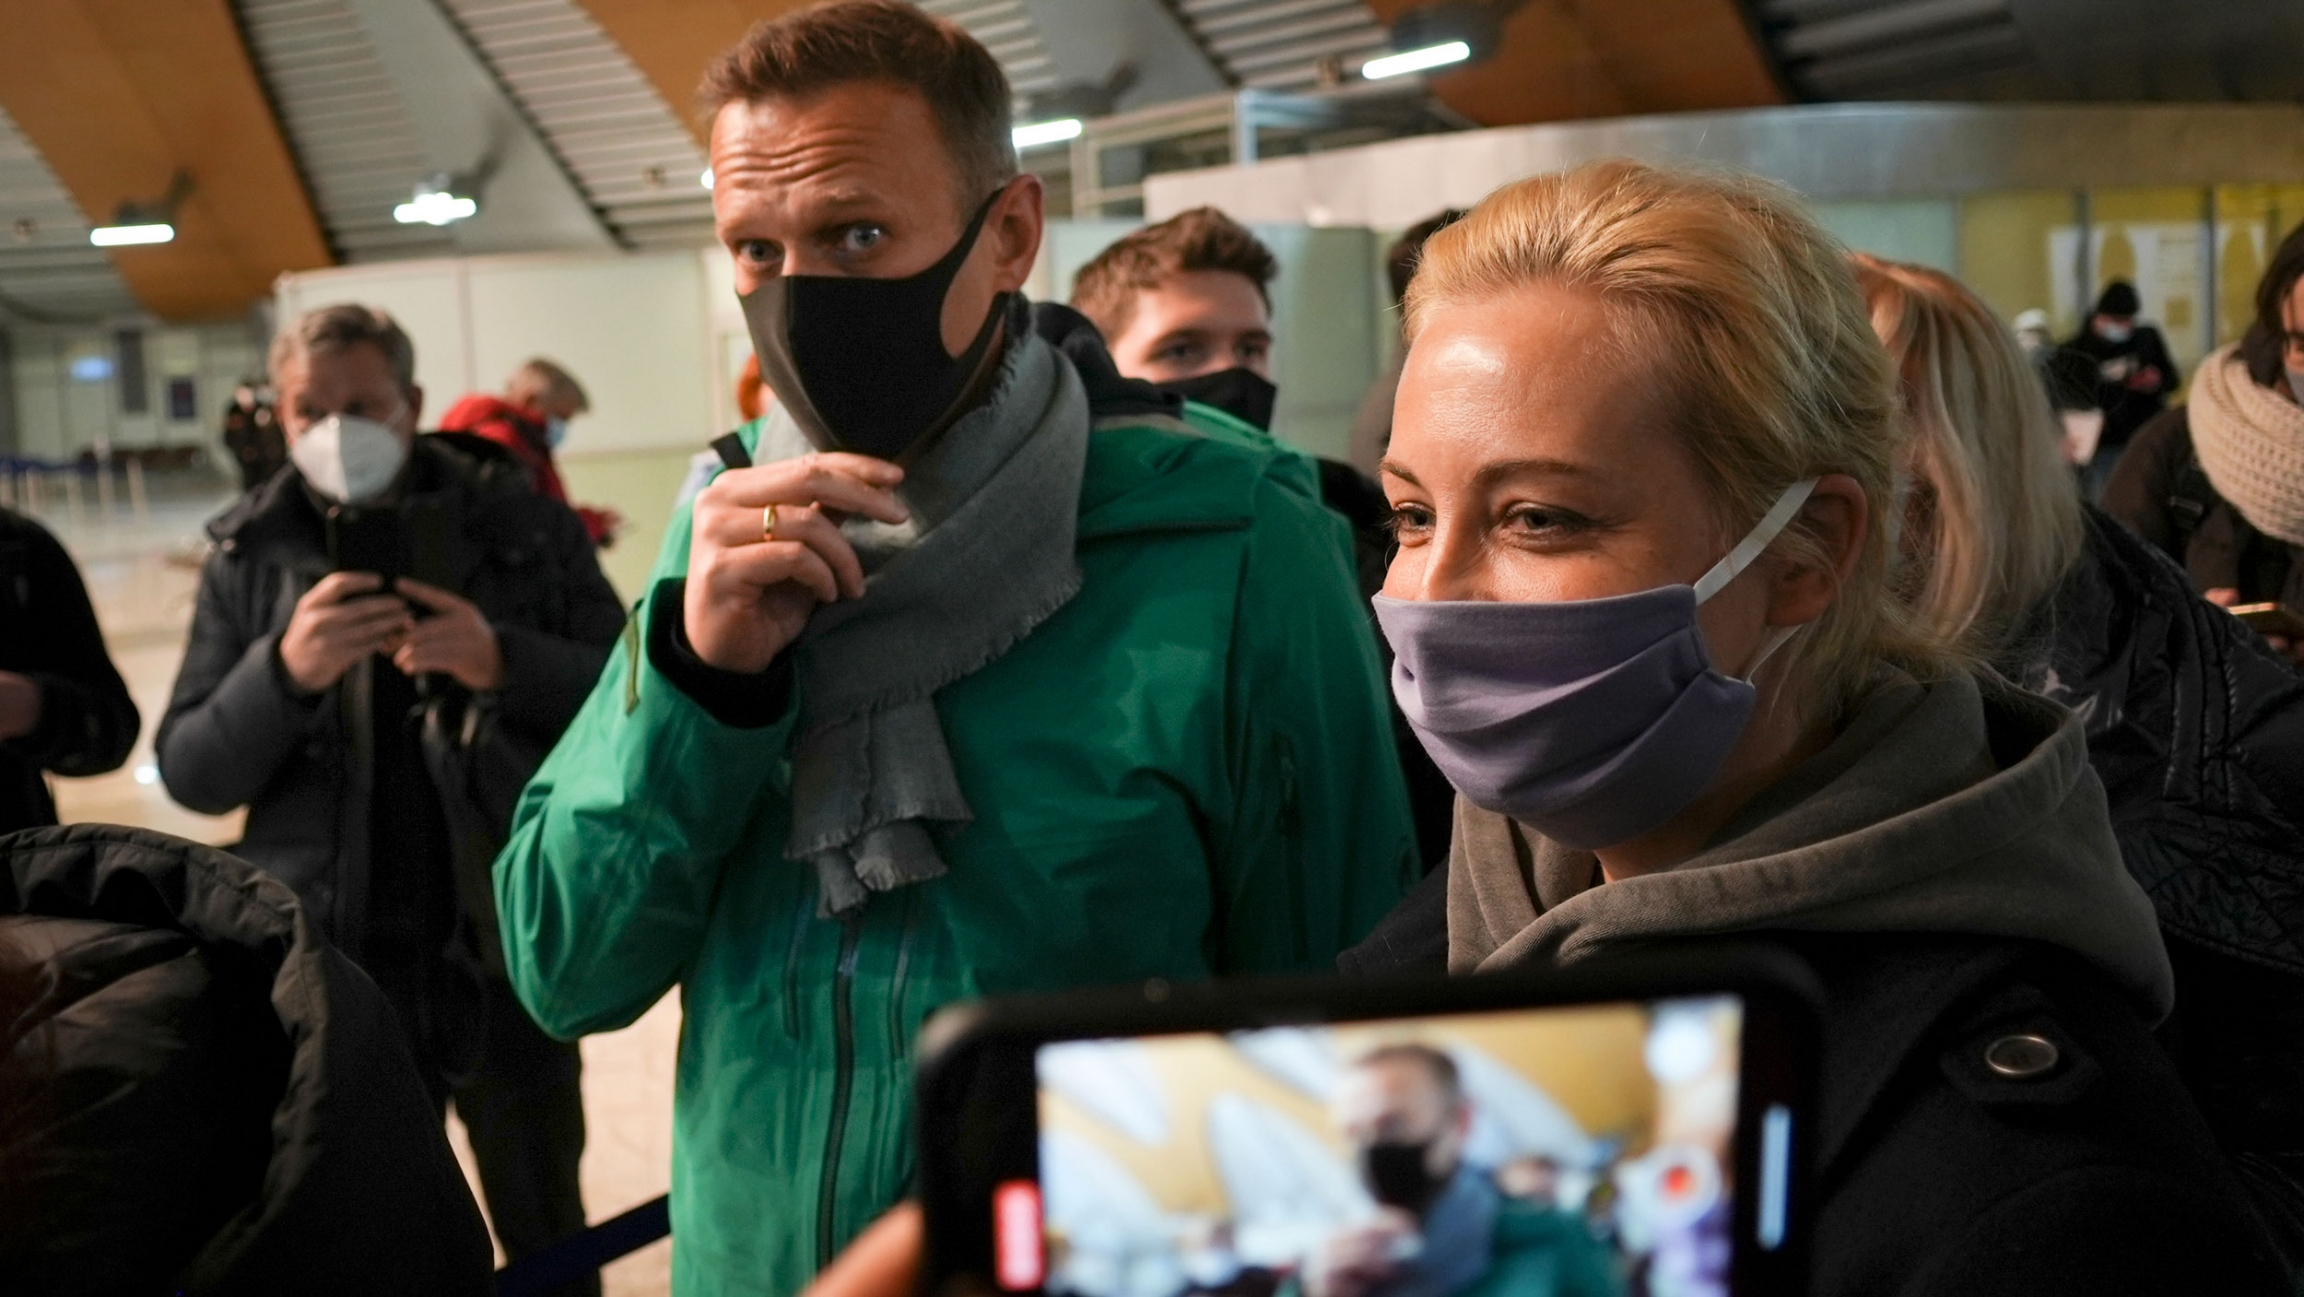 Alexei Navalny and his wife Yuliastand are shown wearing face masks and standing next to each other with a mobile phone also showing them in the near ground.